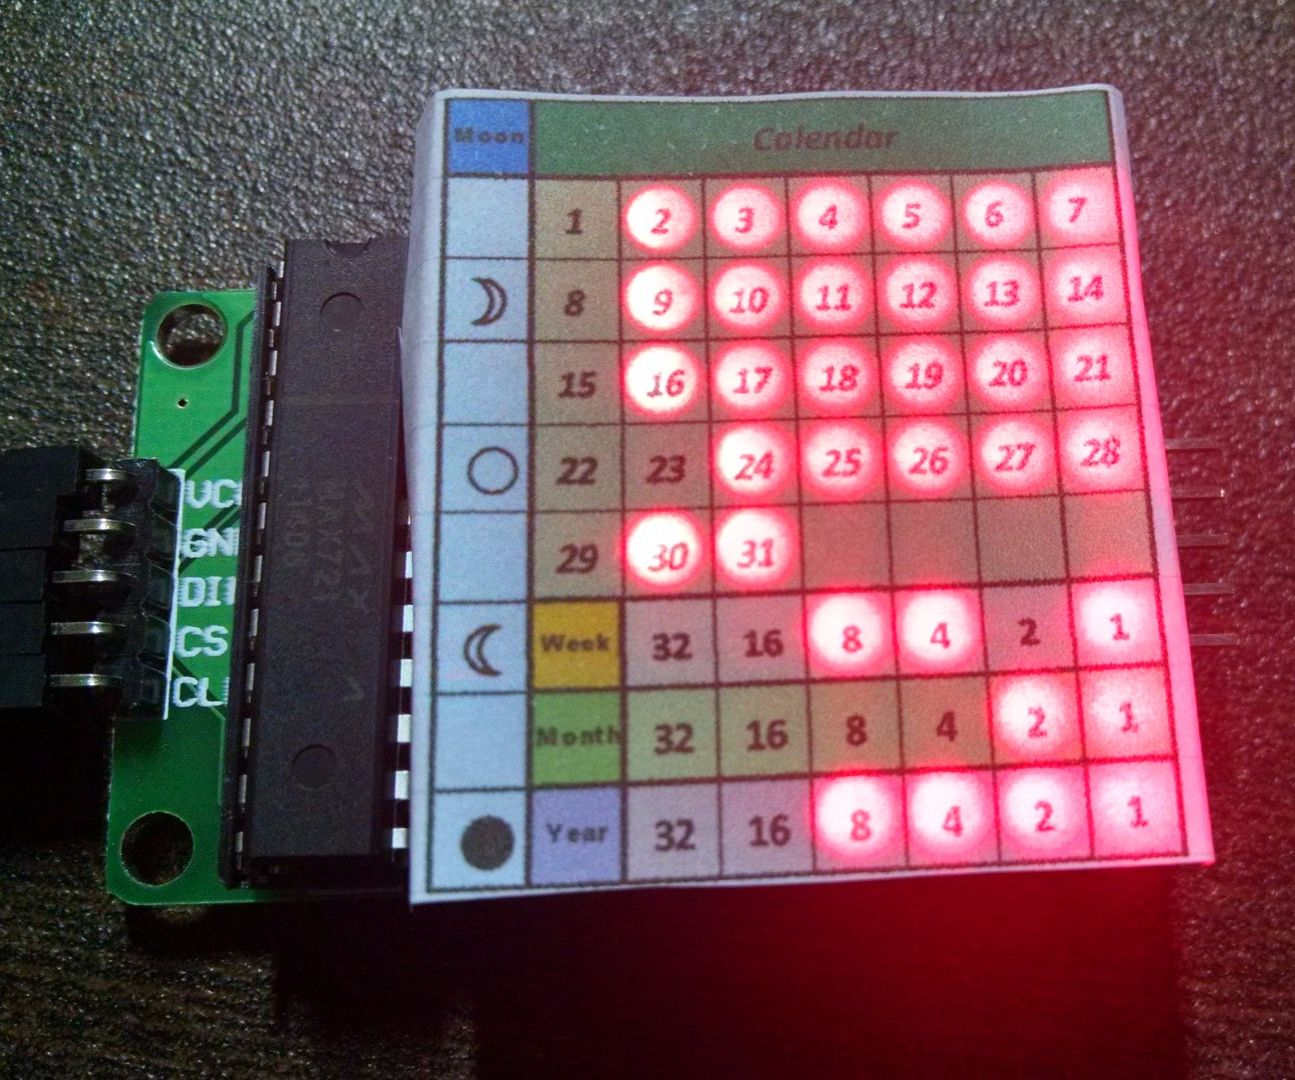 Amazing Binary Calendar and Clock including Moon Phase in a LED Matrix